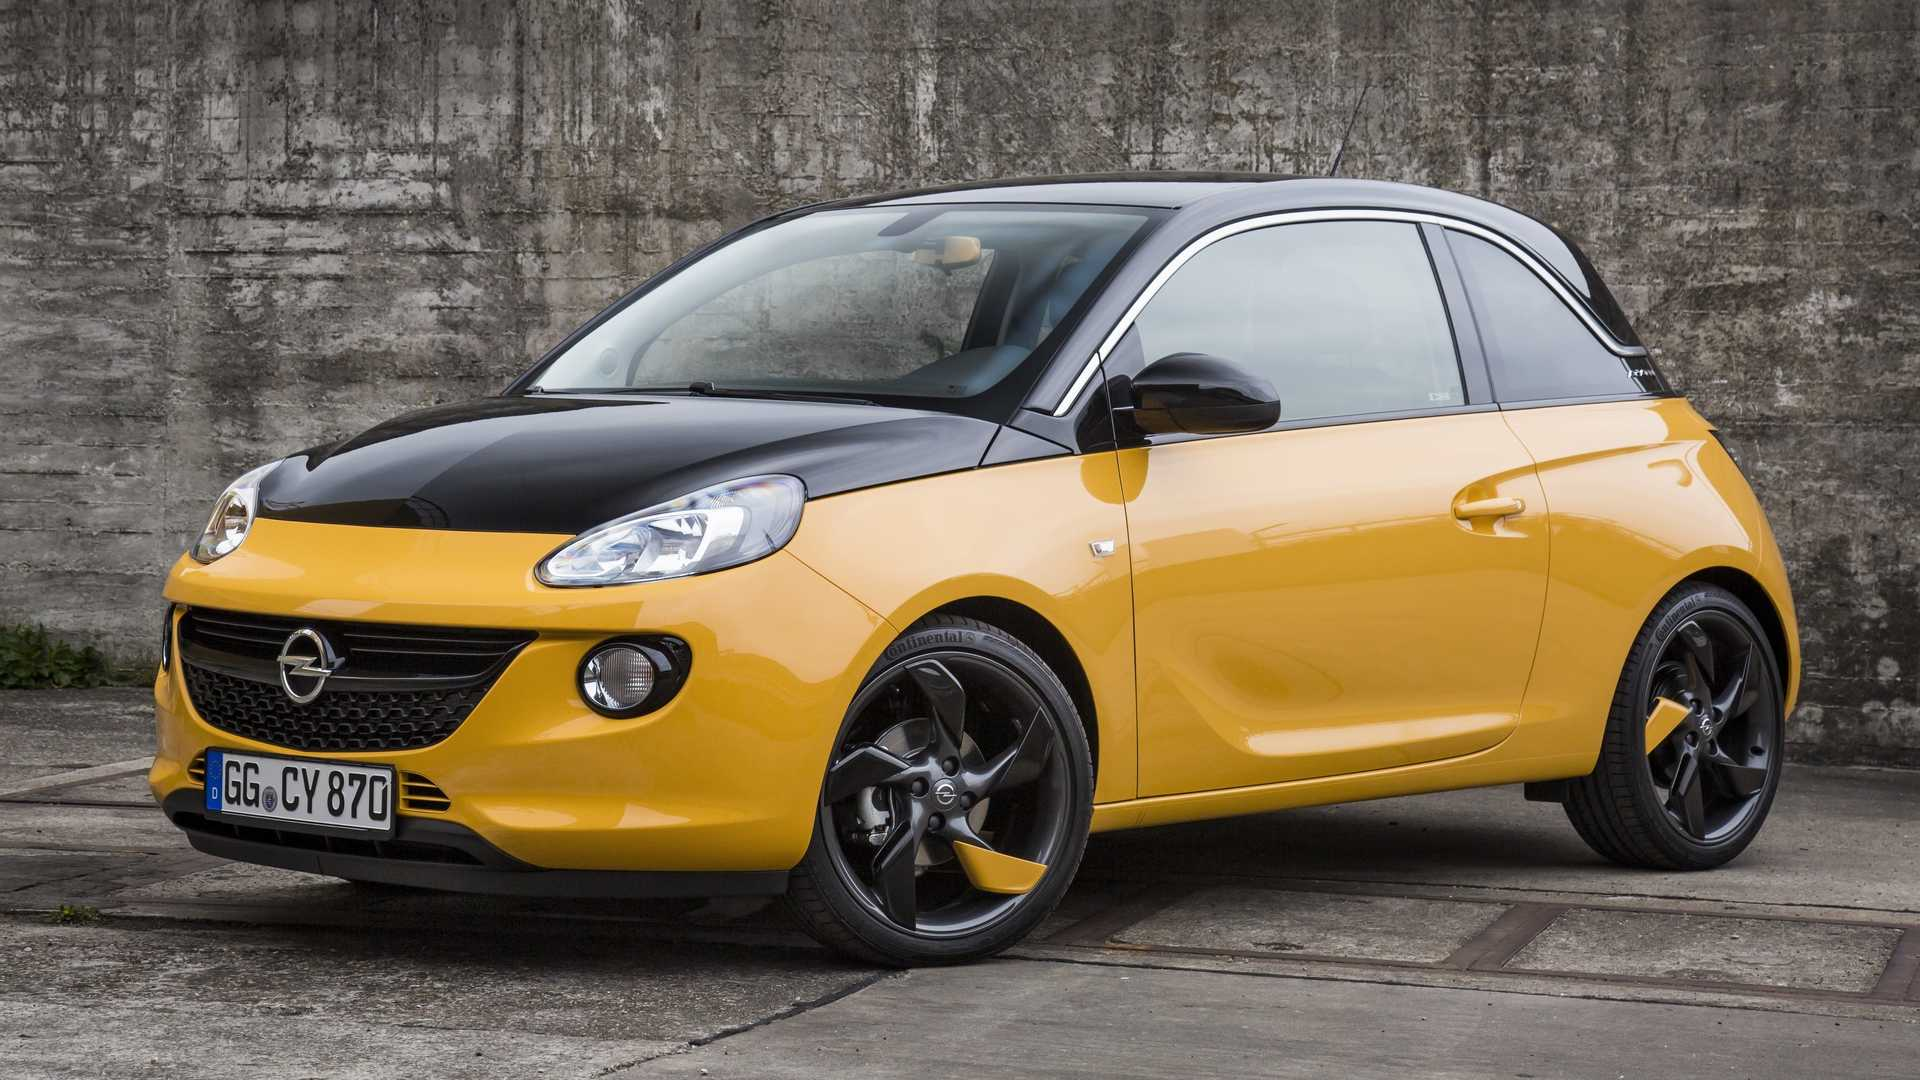 36 All New Opel Adam 2020 History by Opel Adam 2020